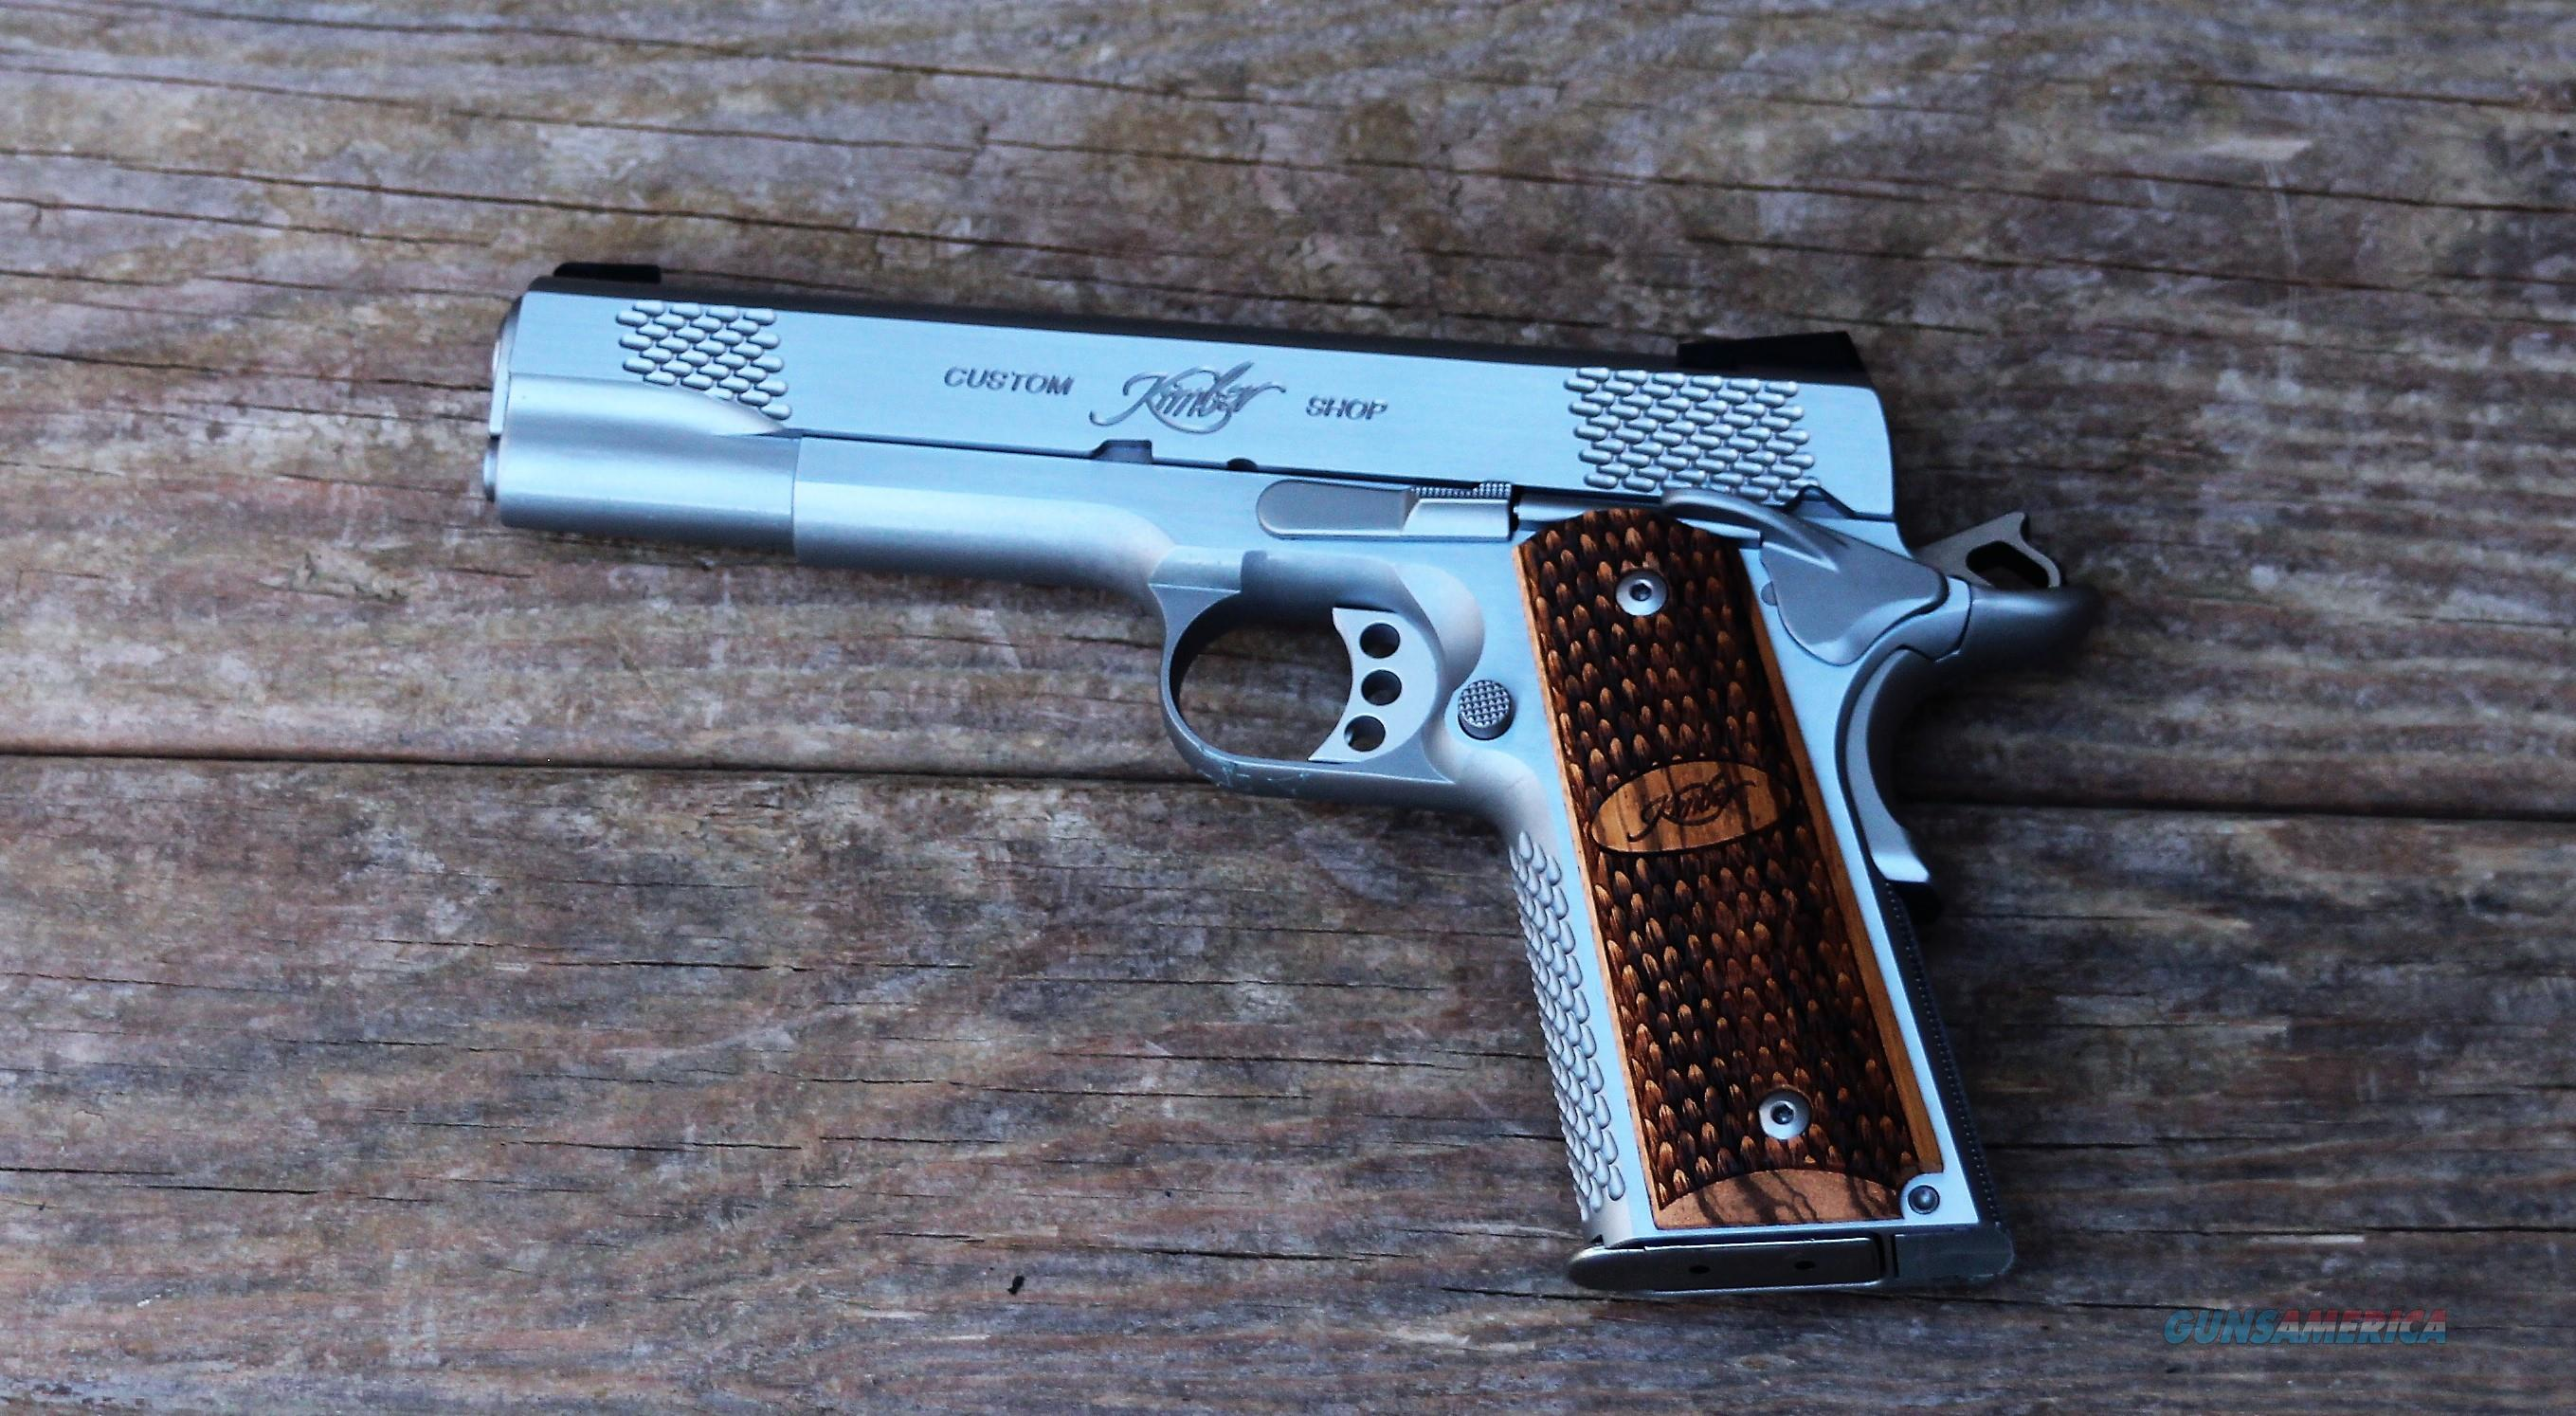 Sale $111 Easy Pay  Kimber Custom With A Hard Case Founding Fathers July 4 1776 2nd Amendment Use ONLY Custom 1911 .45 ACP Raptor II Stainless match grade Barrel 5 in 8 Rd Magazine Tritium 3200181  Guns > Pistols > Kimber of America Pistols > 1911